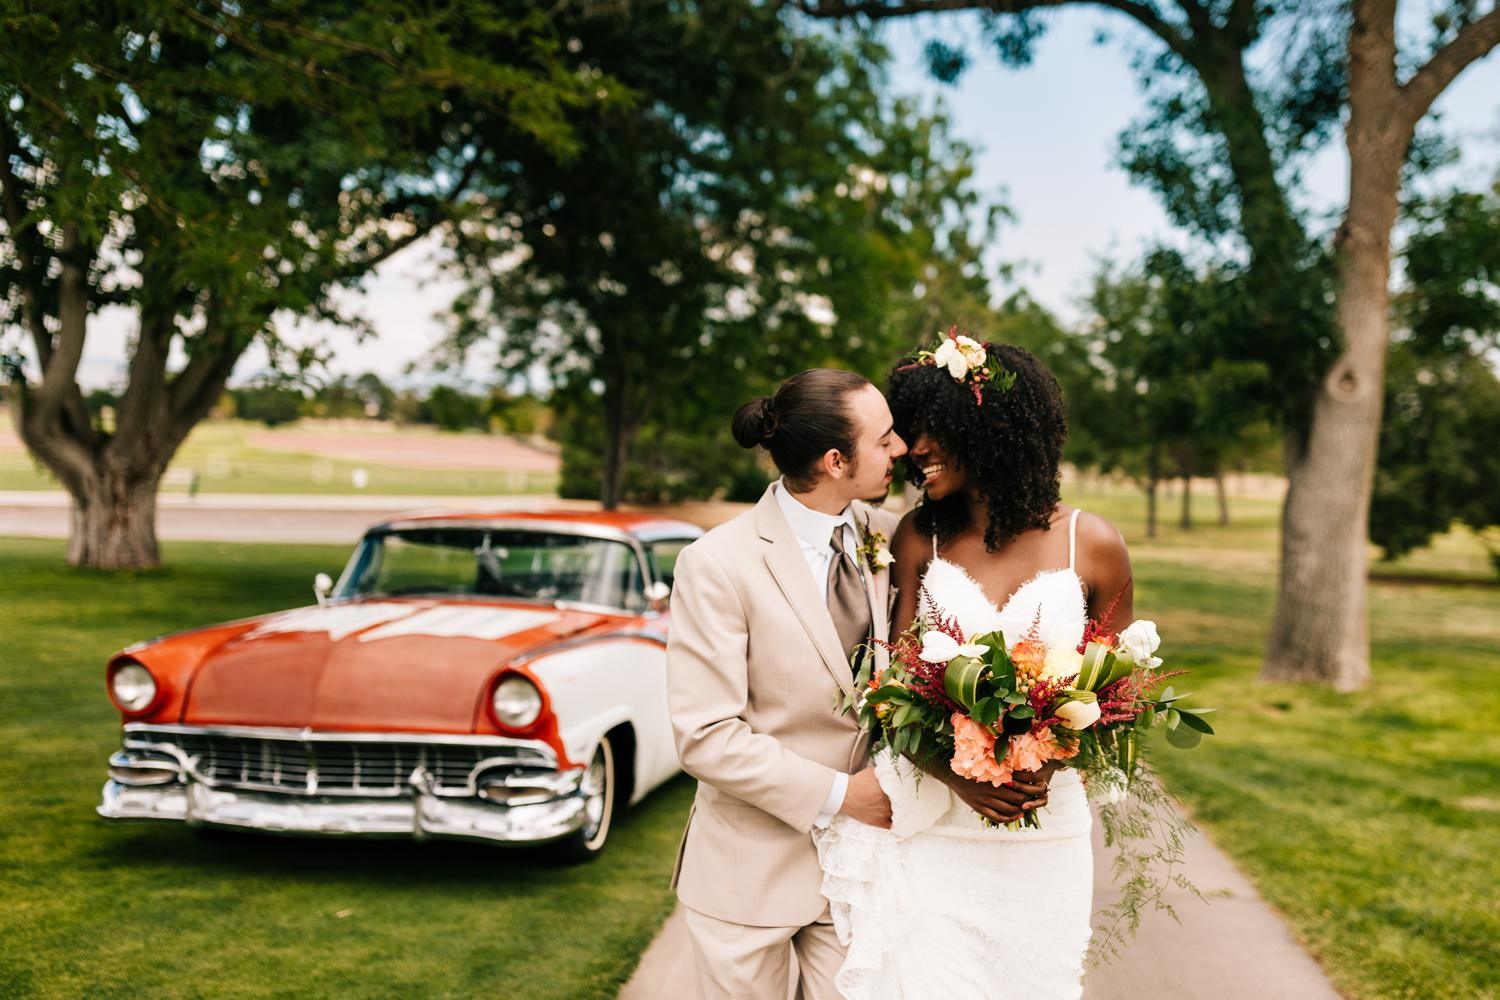 Bride and groom walking away from vintage car at a New Mexico wedding